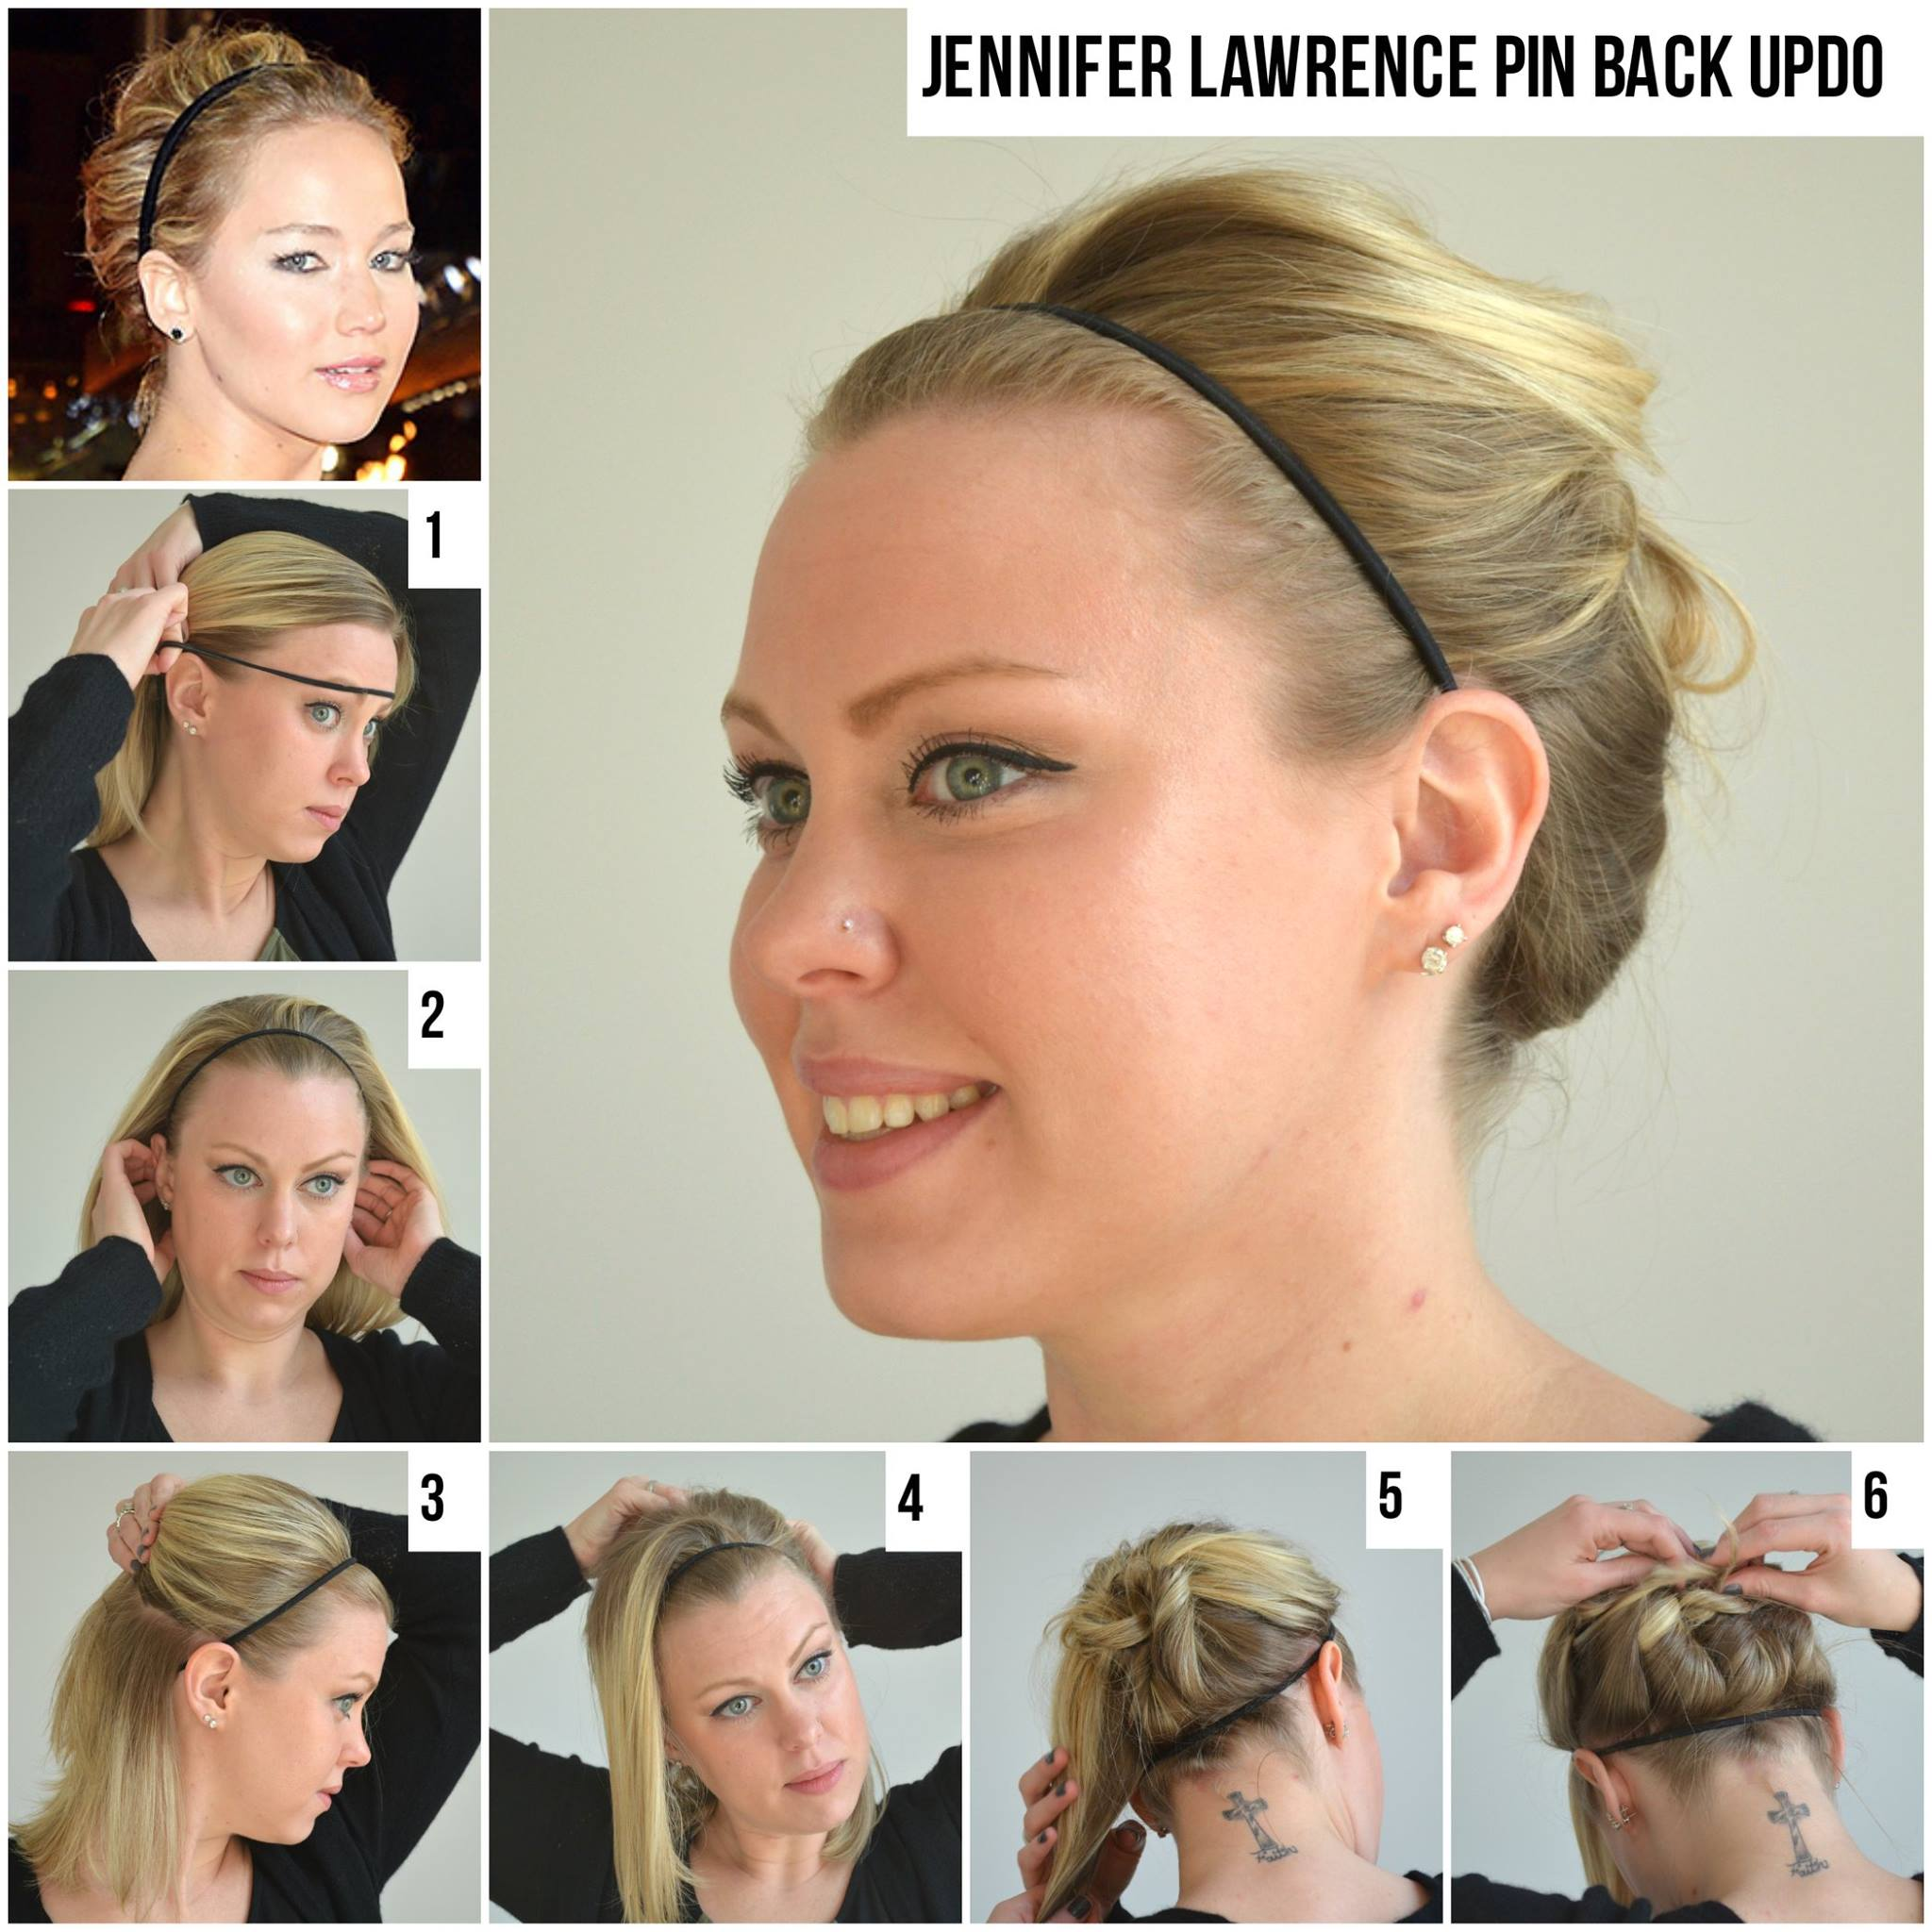 jennifer lawrence hair, jennifer lawrence up-do, jennifer lawrence, jennifer lawrence red carpet hair, up-dp how to, jennifer lawrence up do , jennifer lawrence how to